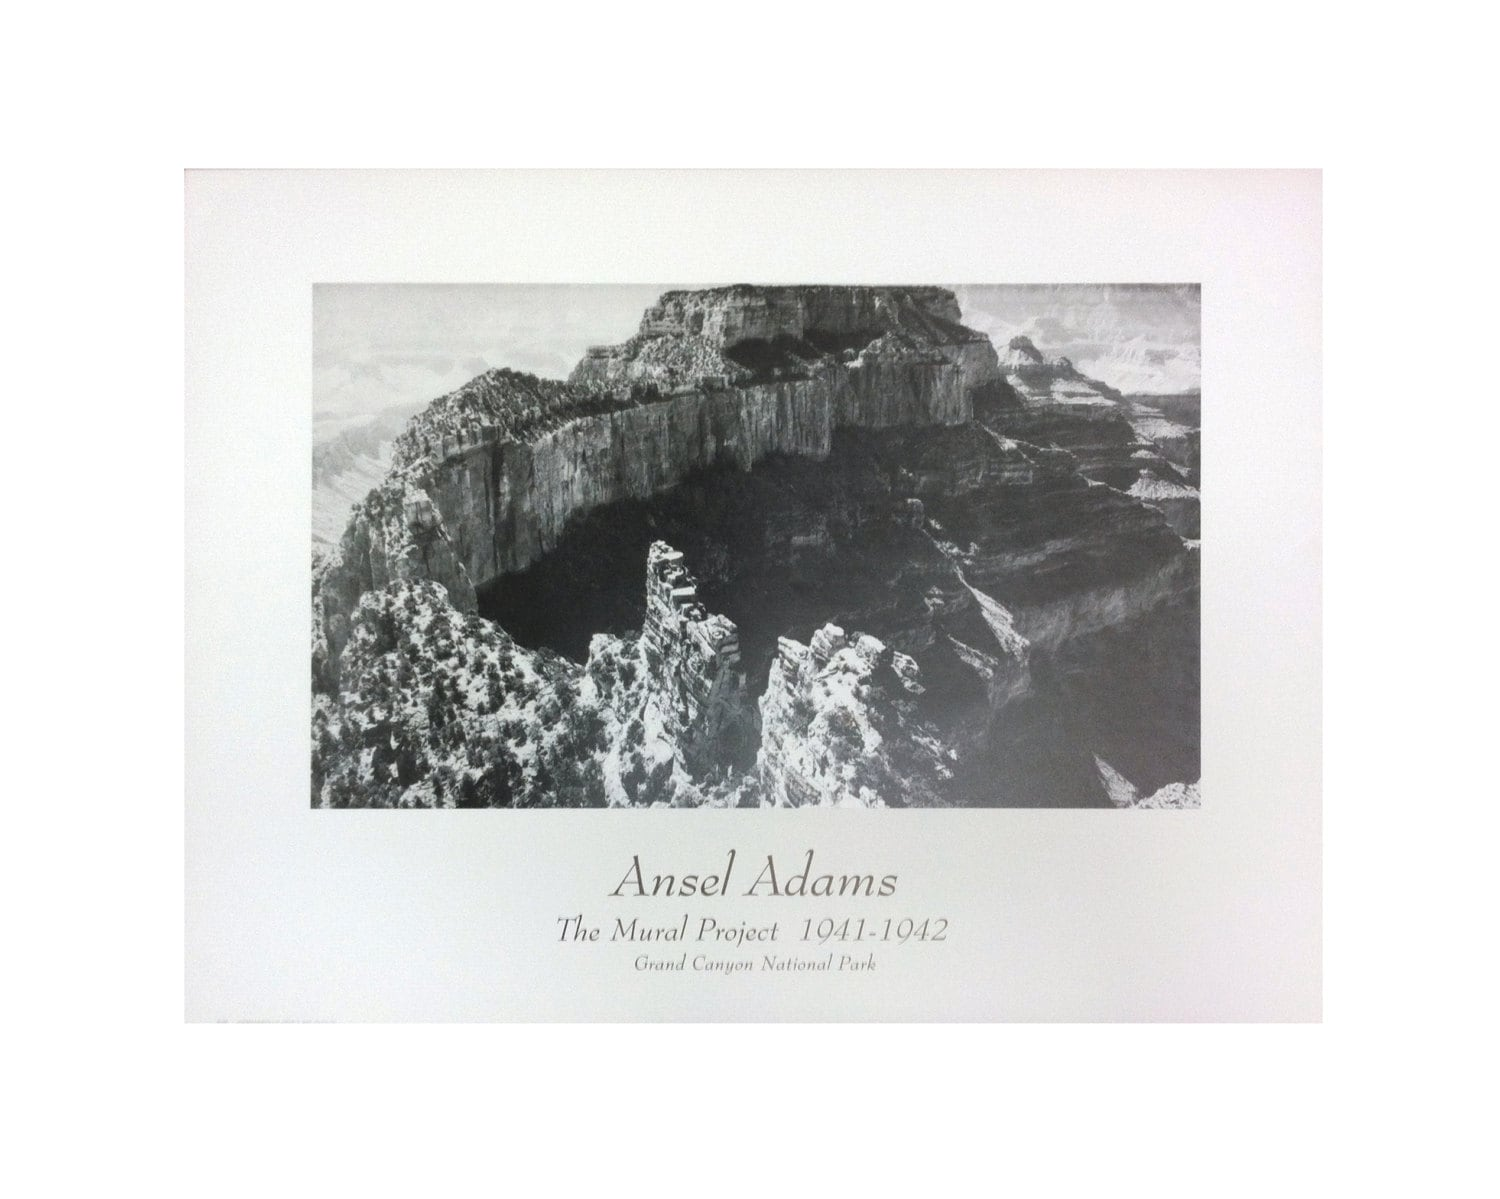 Vintage ansel adams grand canyon national park the for Ansel adams mural project posters